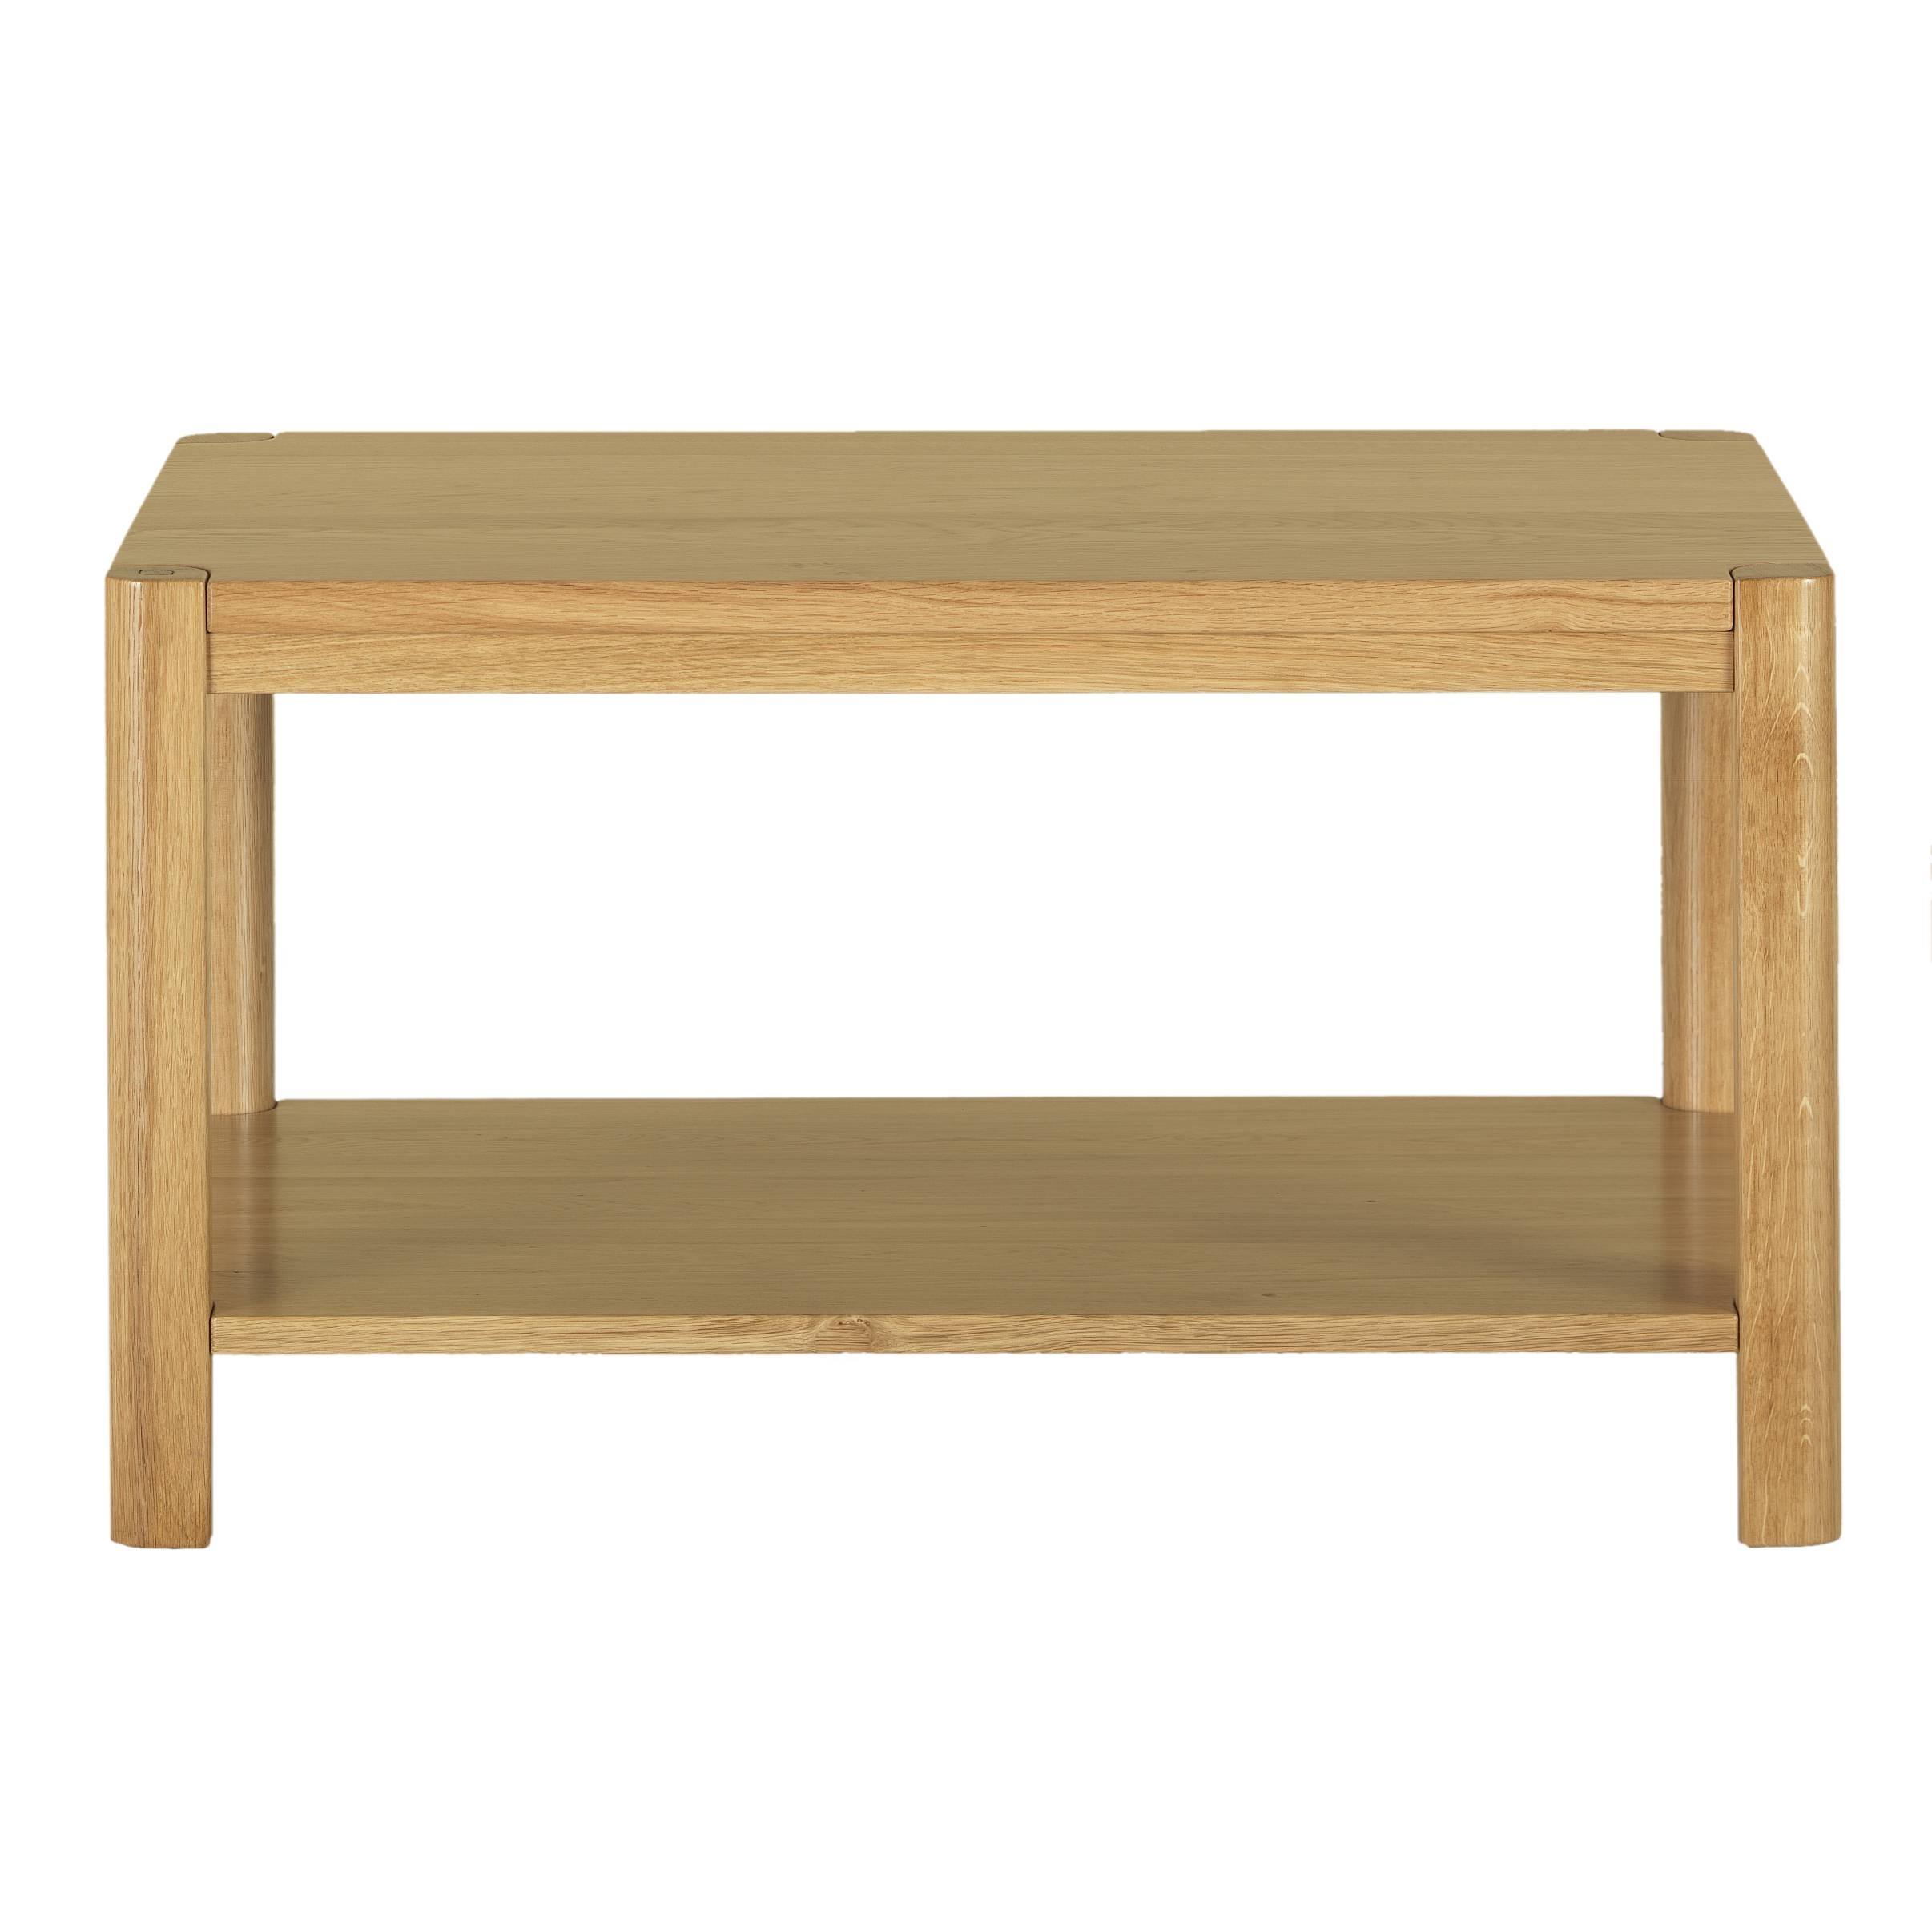 Favorites Small Coffee Table Ideas – Wood Coffee Tables, White Intended For Small Coffee Tables With Shelf (View 22 of 30)